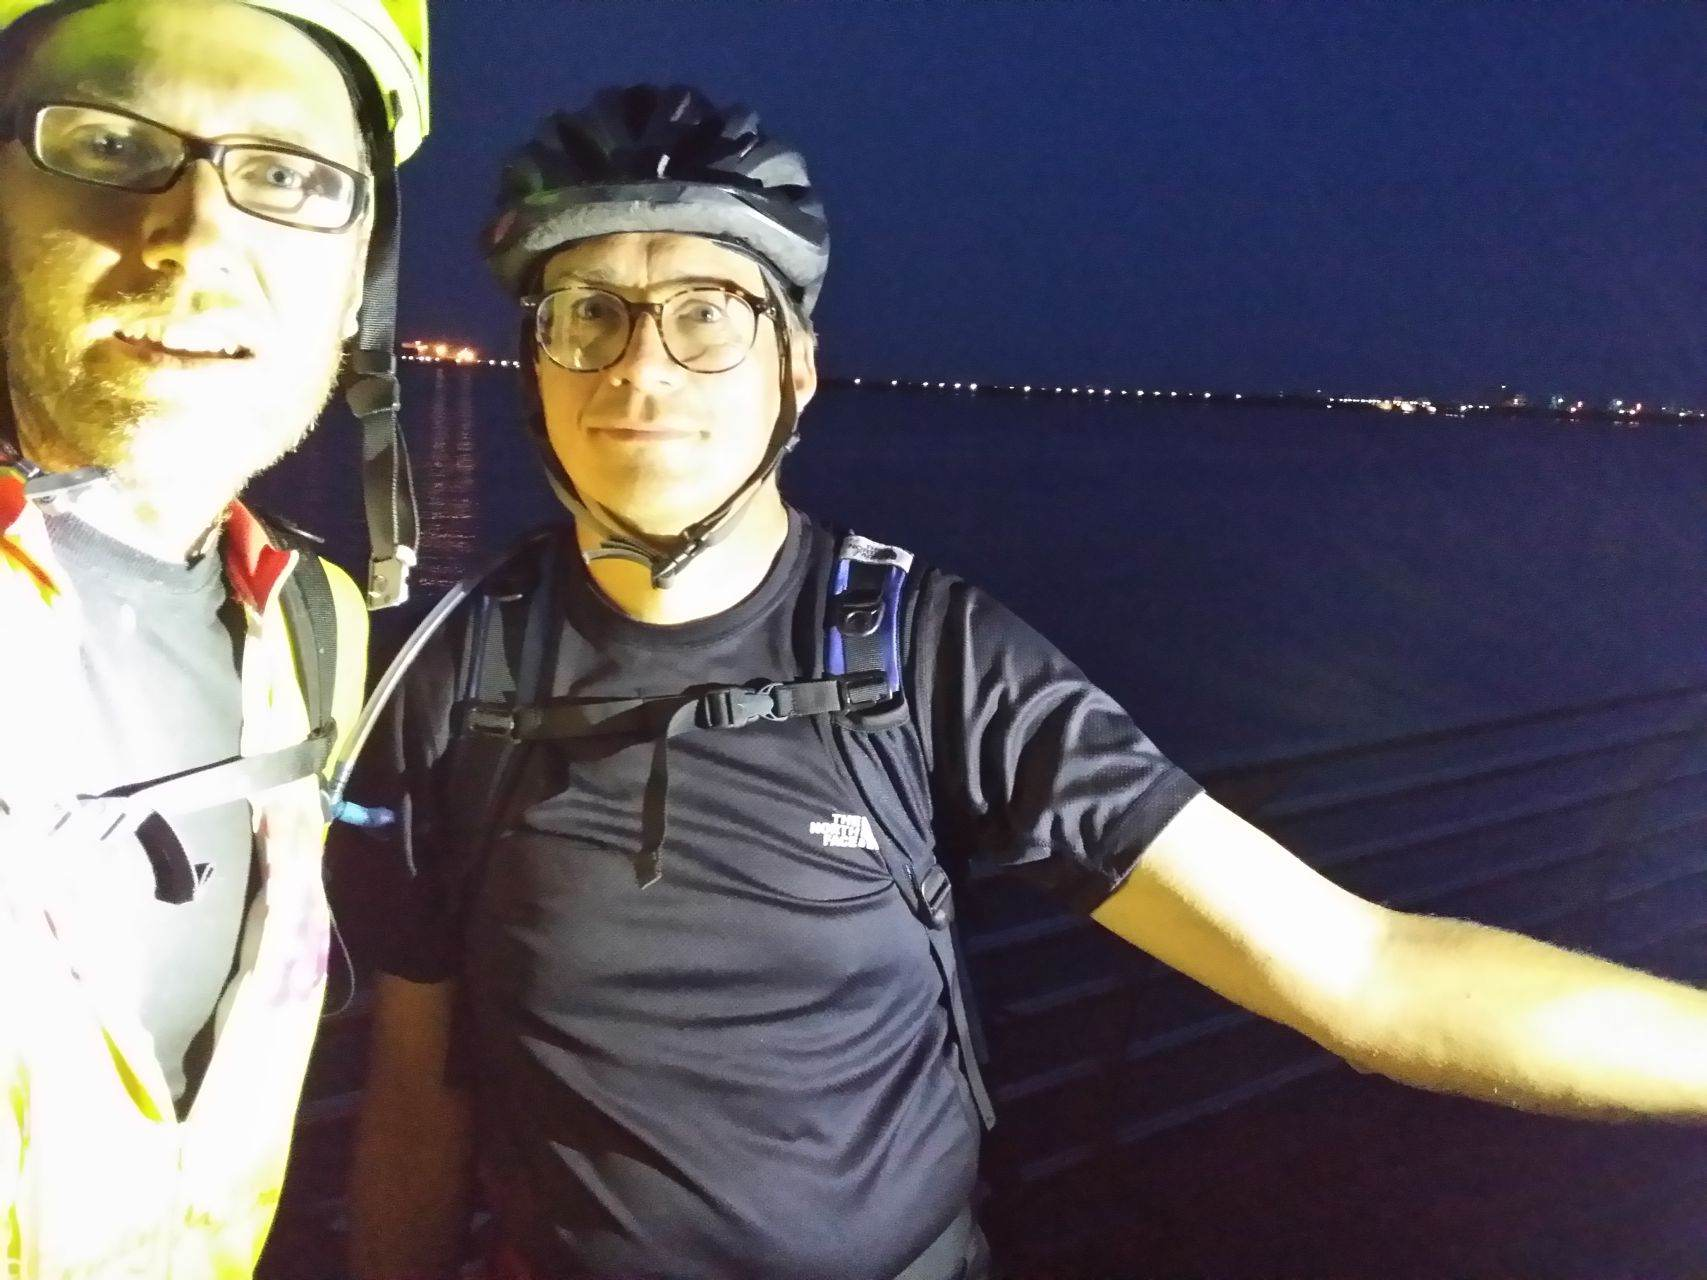 Day 7 - Cardiff Bay and the sea ... the end! In the dark! © Paul Bonwick